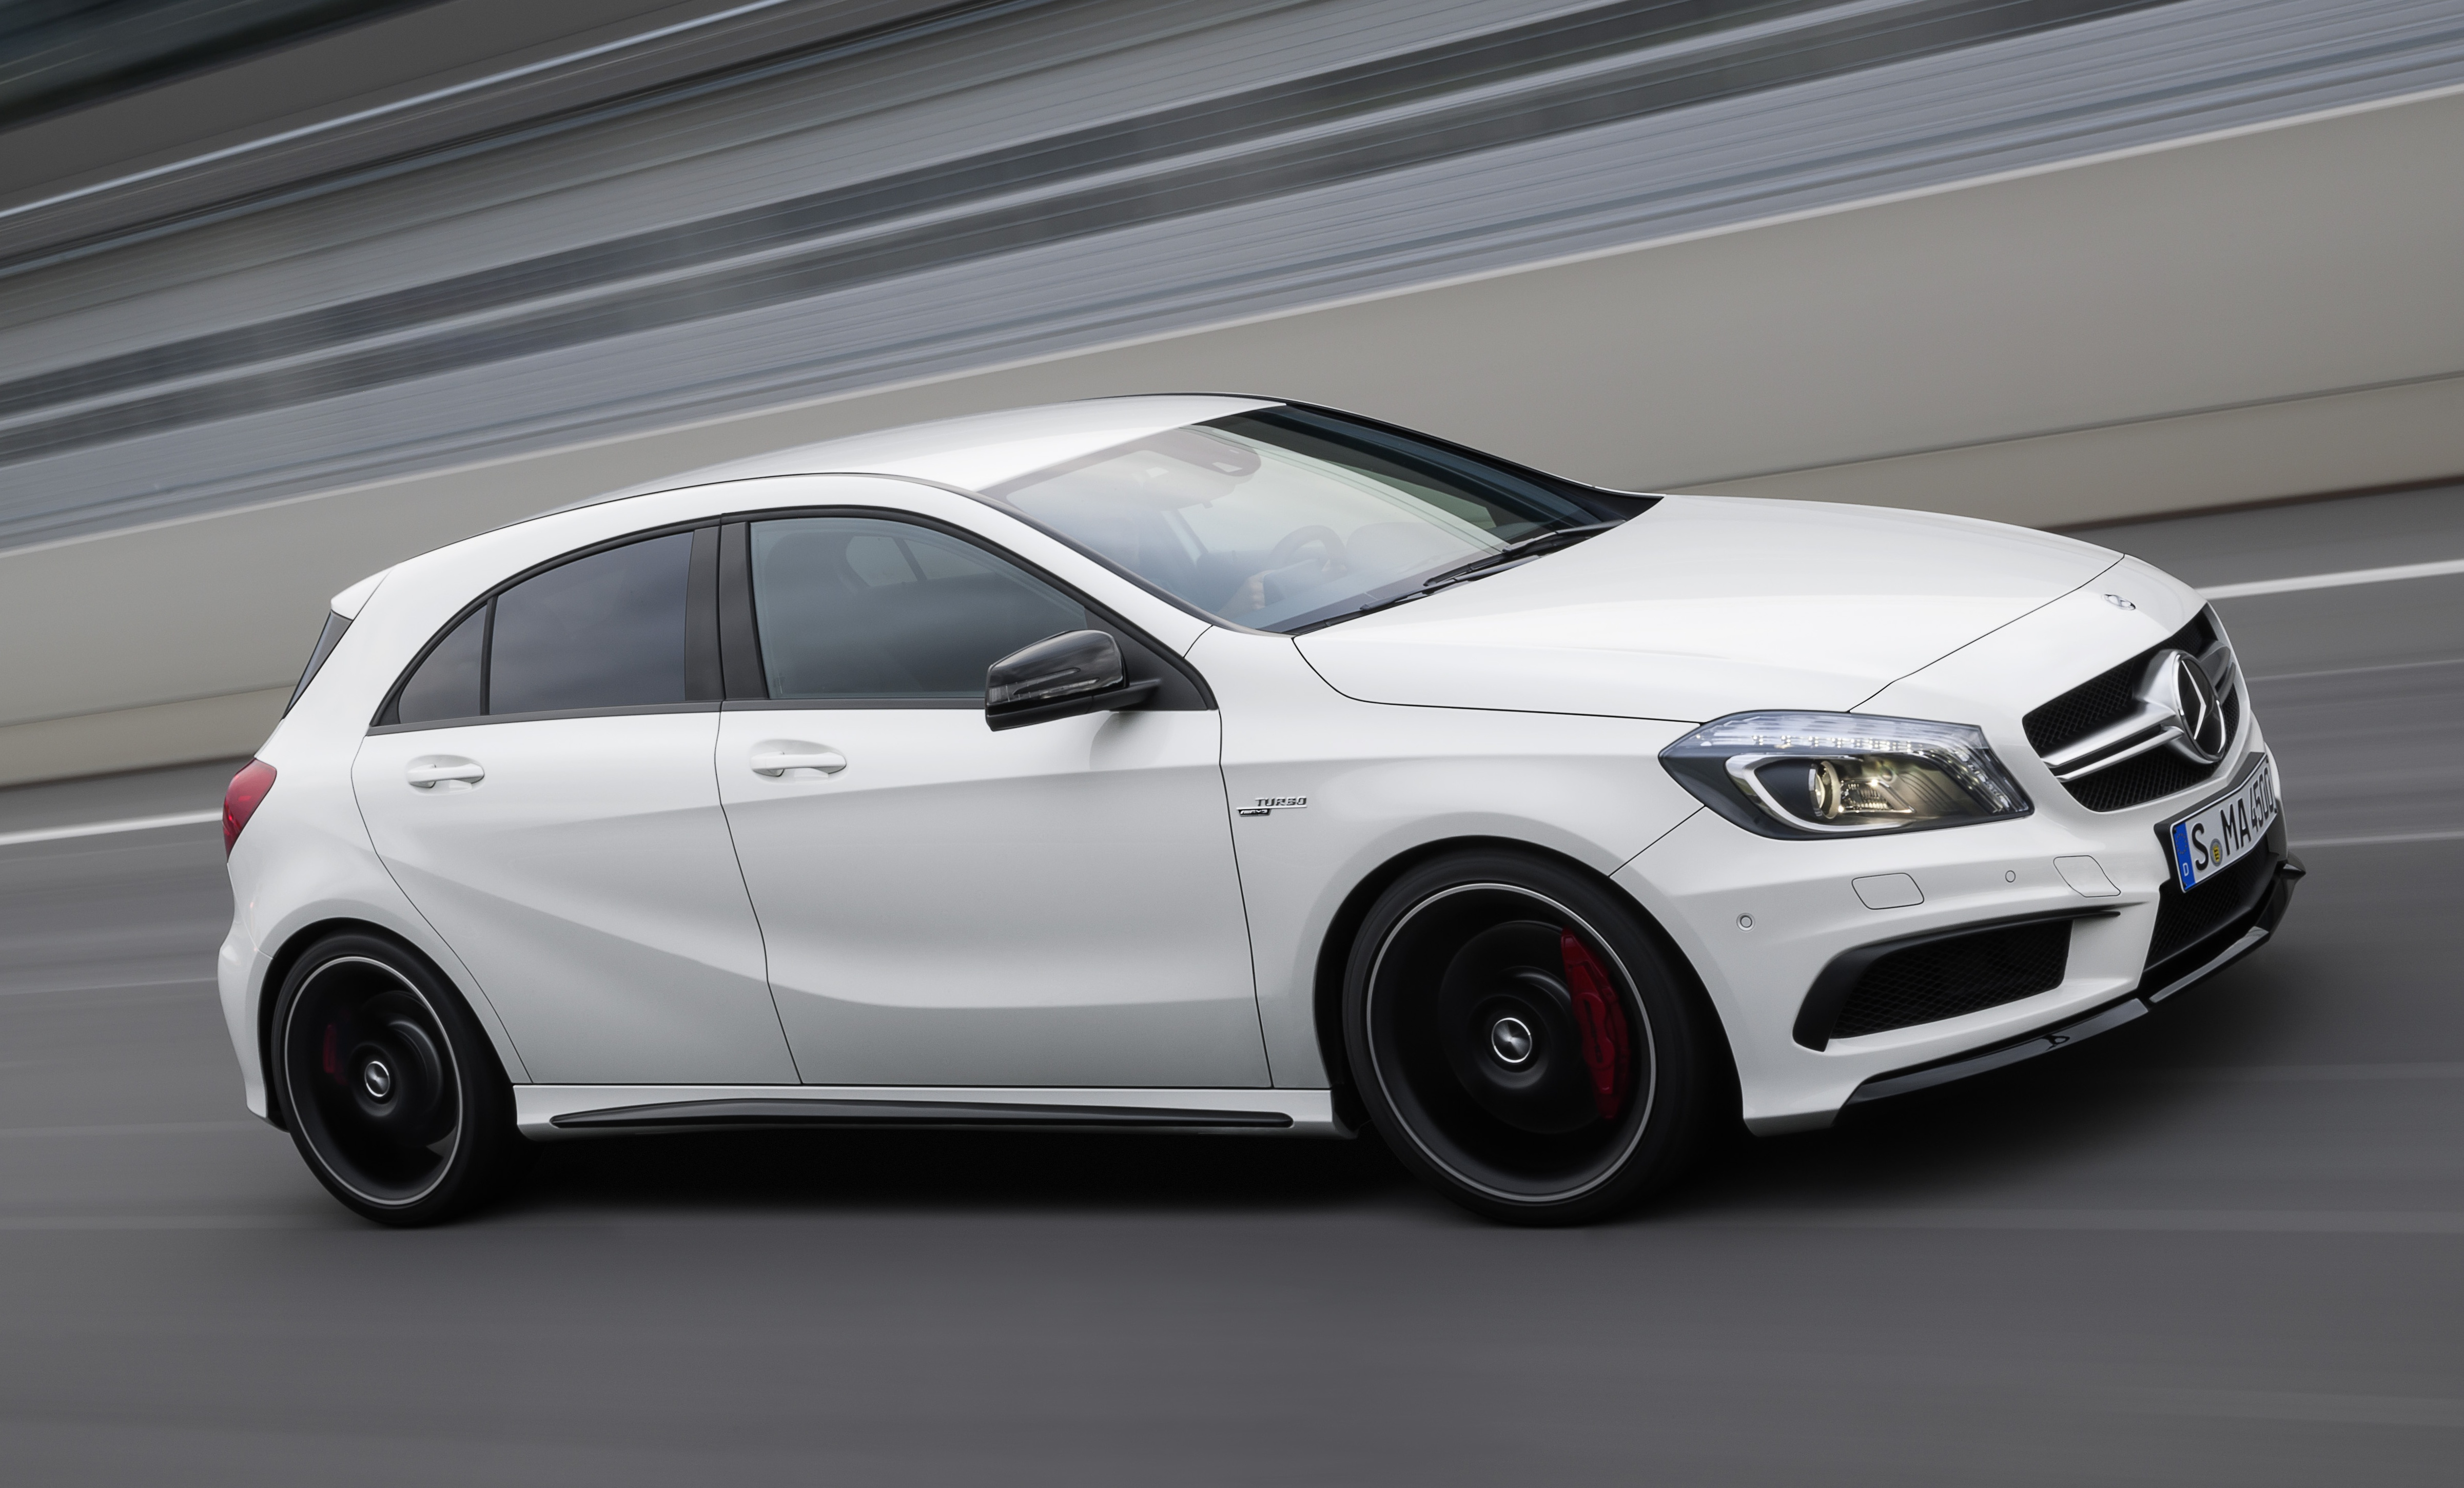 Mercedes Benz A 45 Amg 360hp 450nm Range Topper Paul Tan